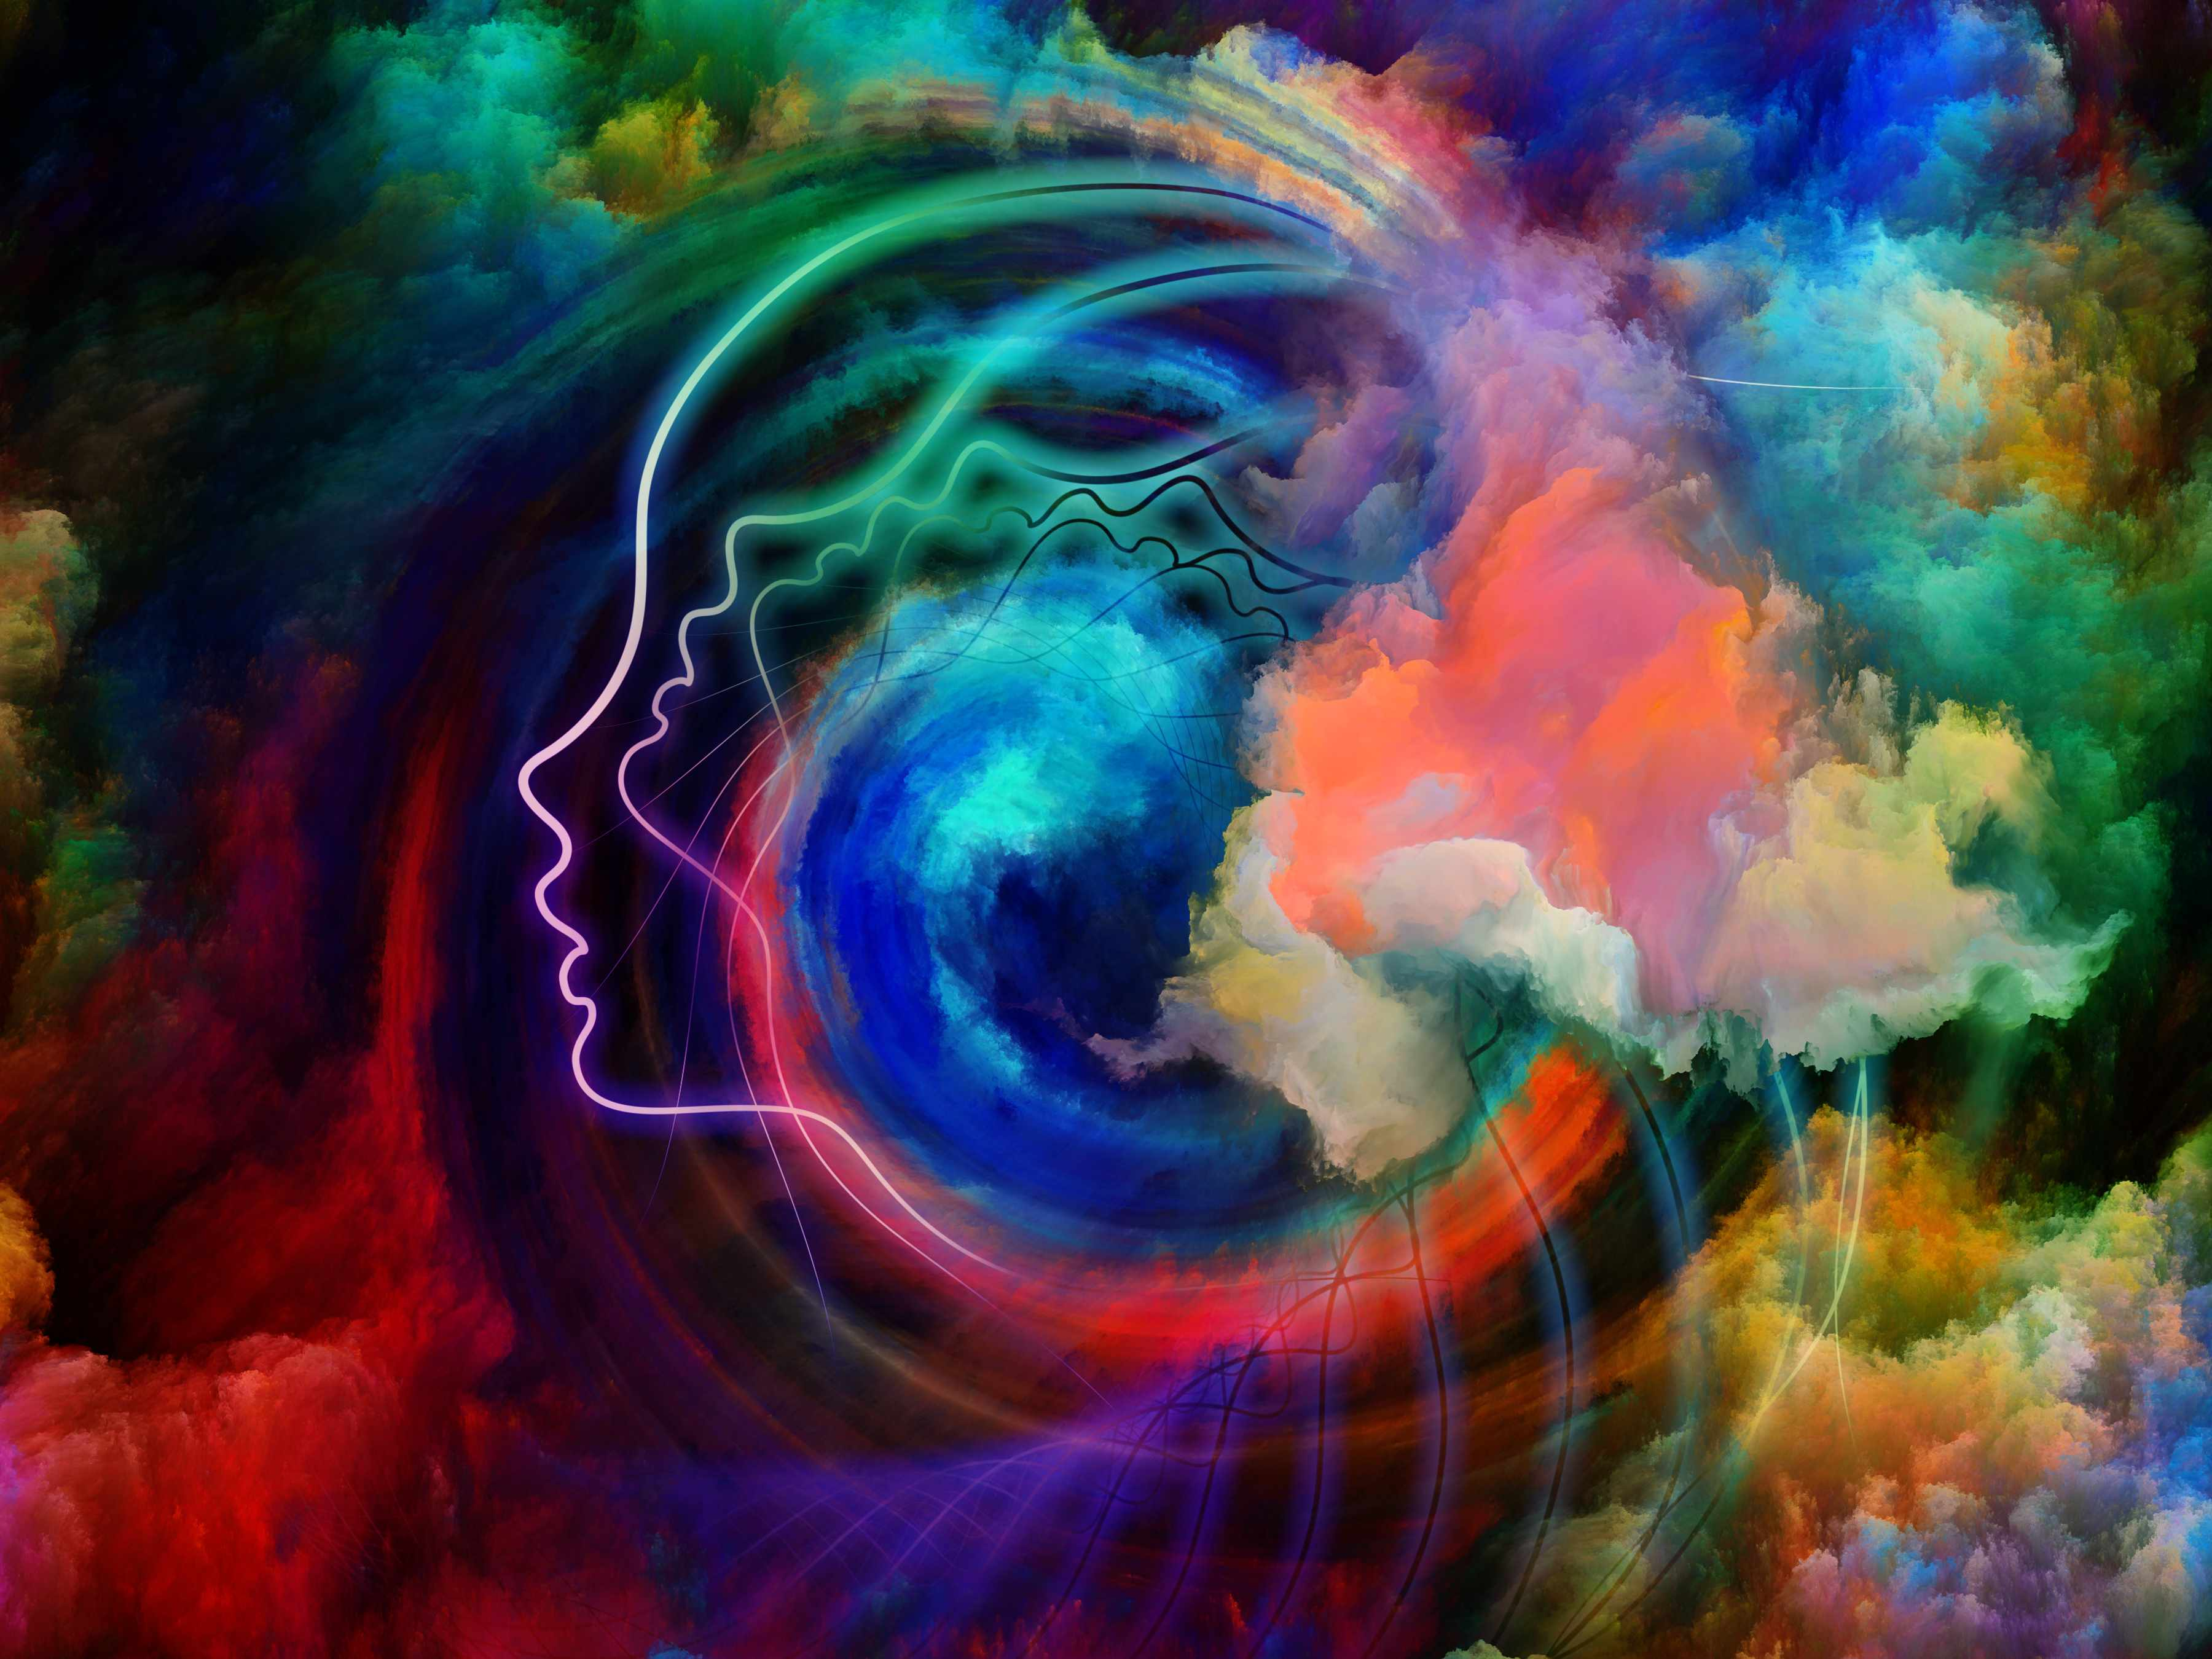 a drawing of a person's head with colors representing inner reality, mental health, thinking and dreaming